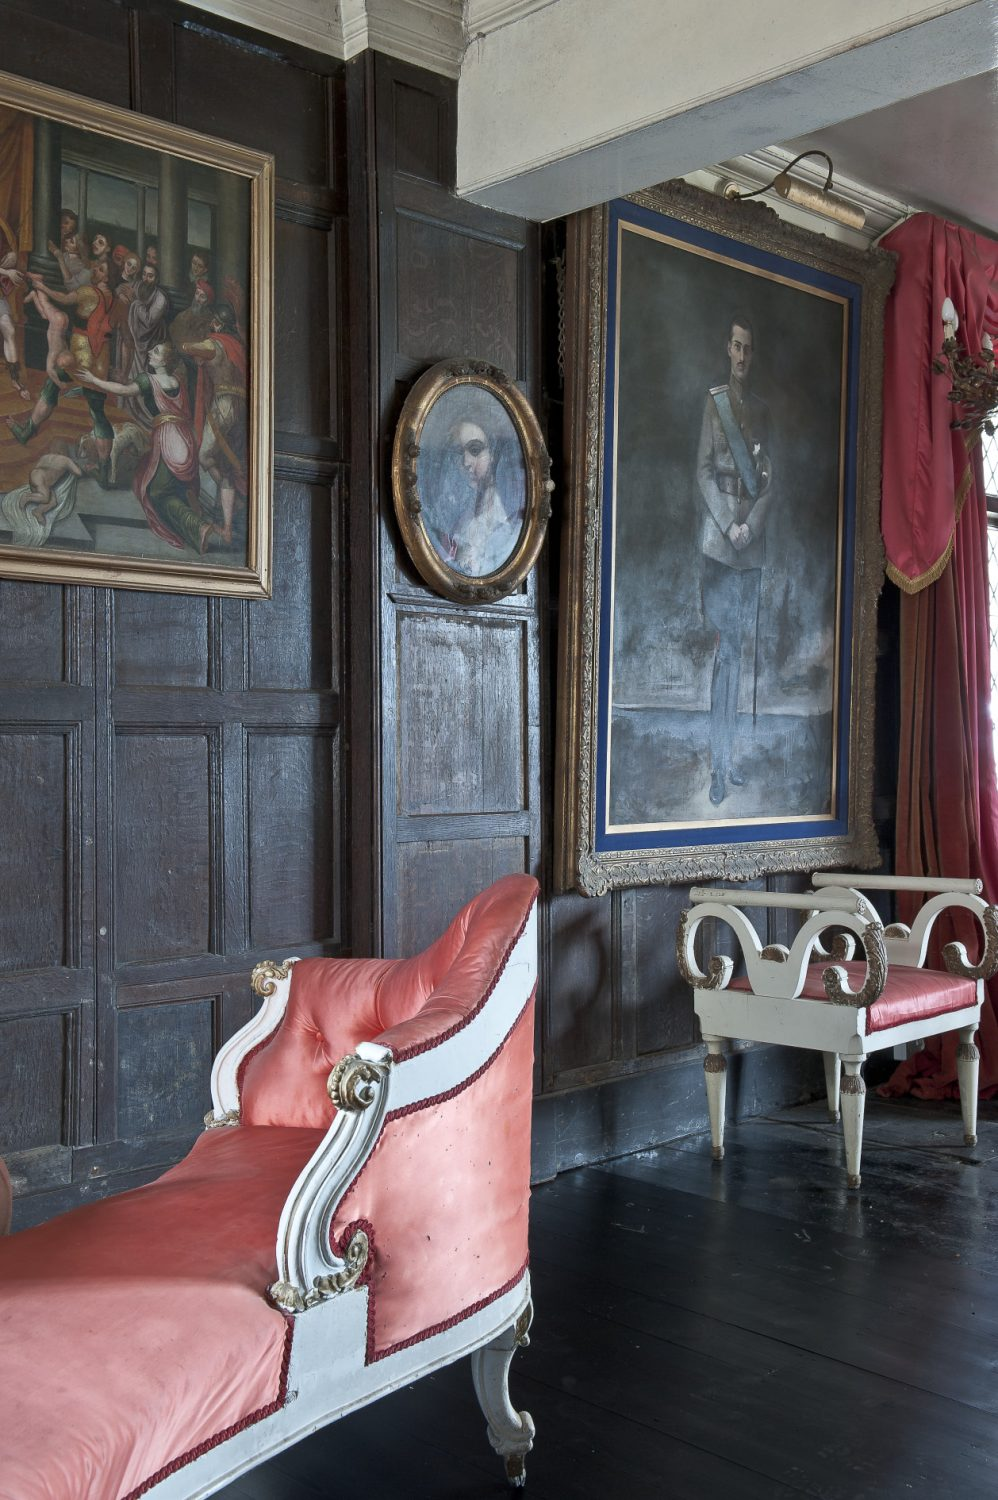 Olga has now reached the stage where she can concentrate on the decoration of the major rooms of the house which are open to paying guests from May to October